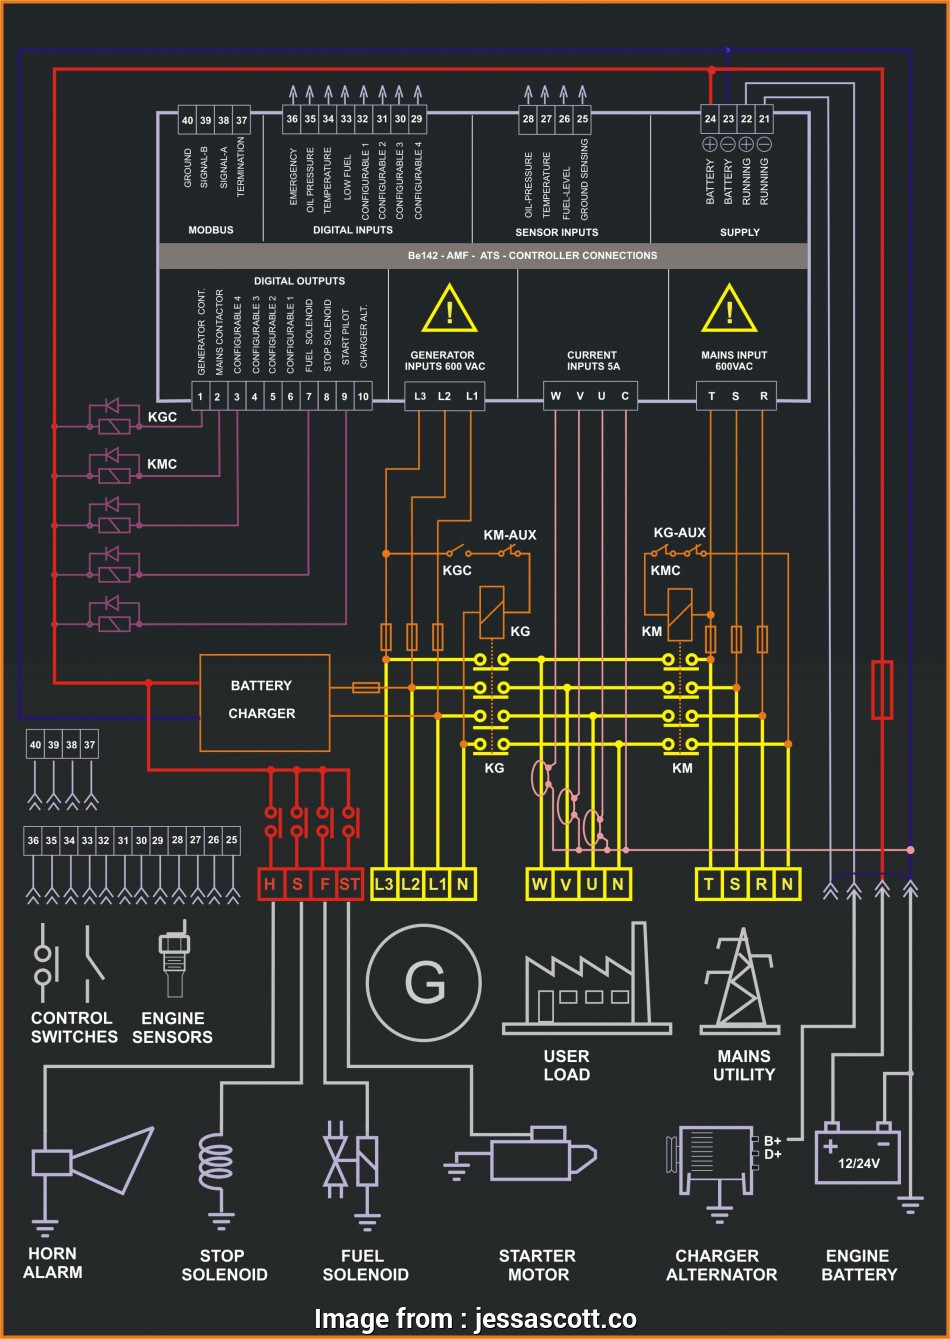 Autocad Electrical Panel Wiring Nice Generator Control